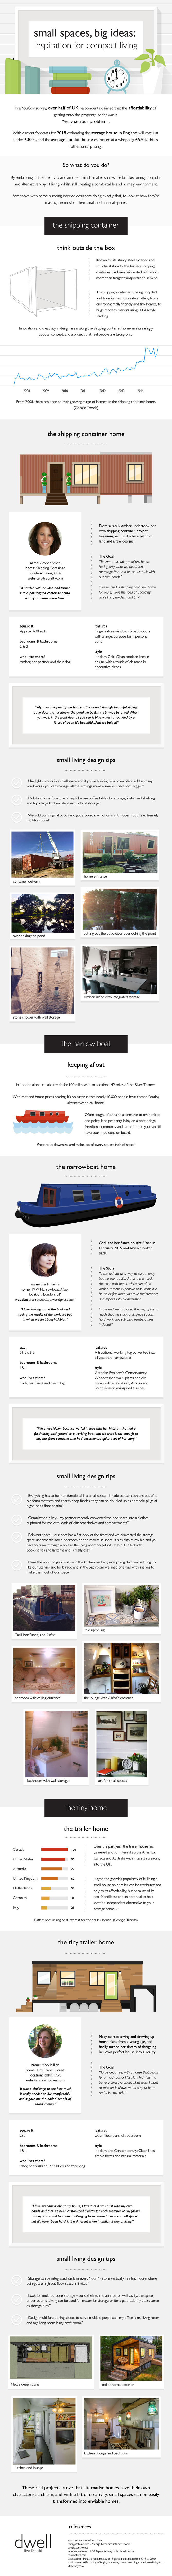 Small homes infograohic